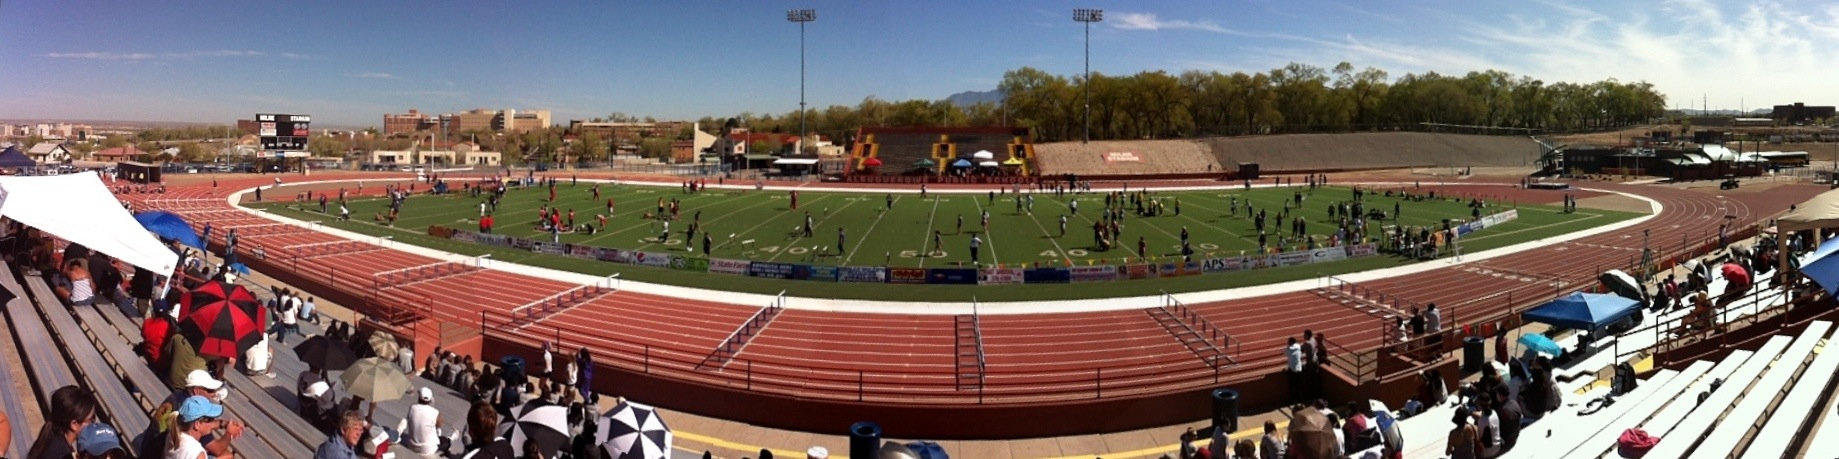 Panoramic view of Milne Stadium